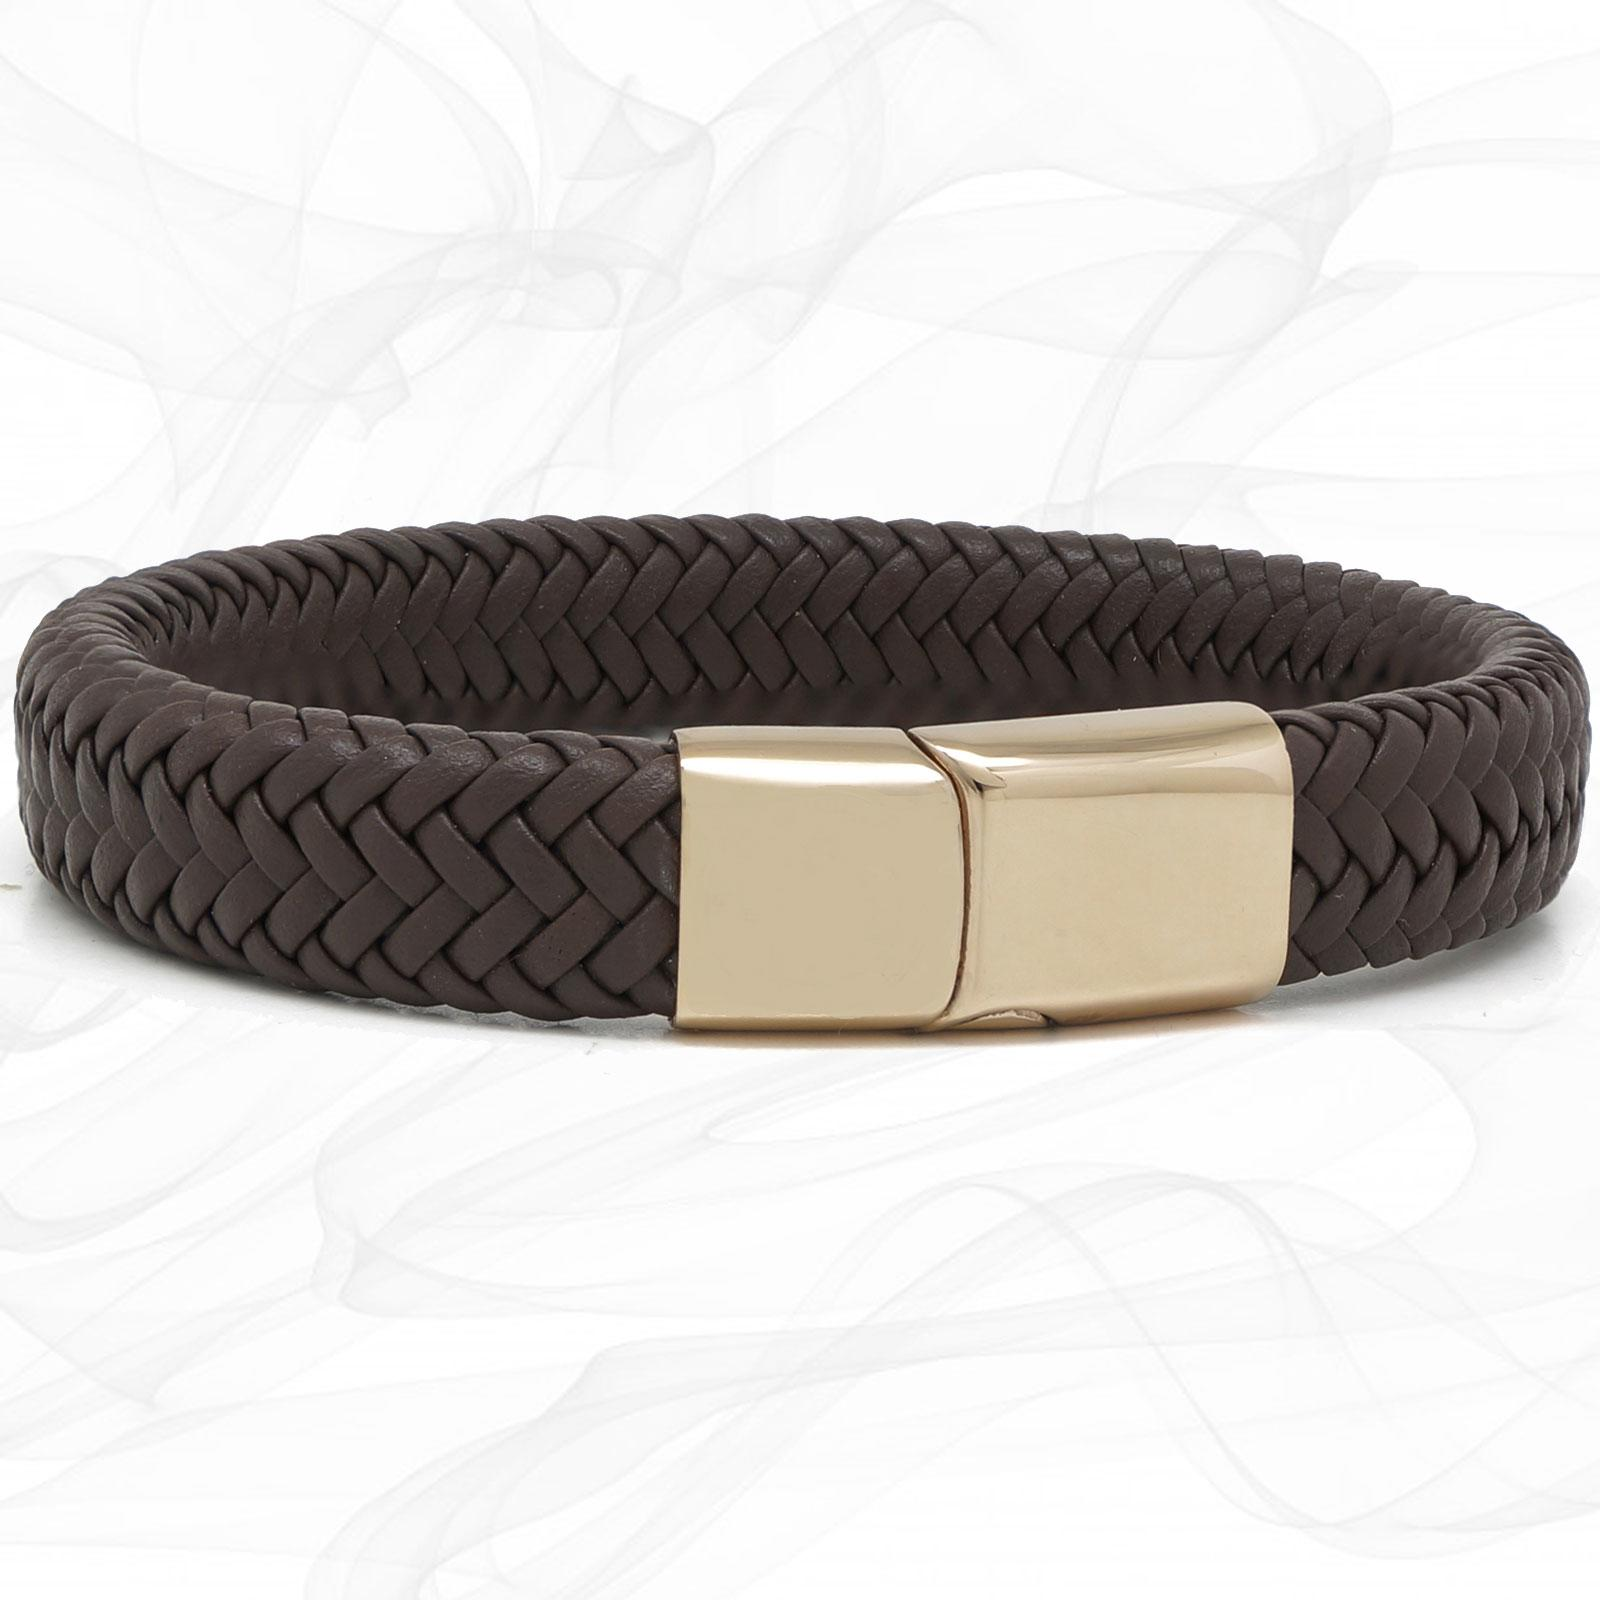 Chunky Brown Super Soft Premium Leather Bracelet with a Rose Gold Sliding Magnetic Clasp.